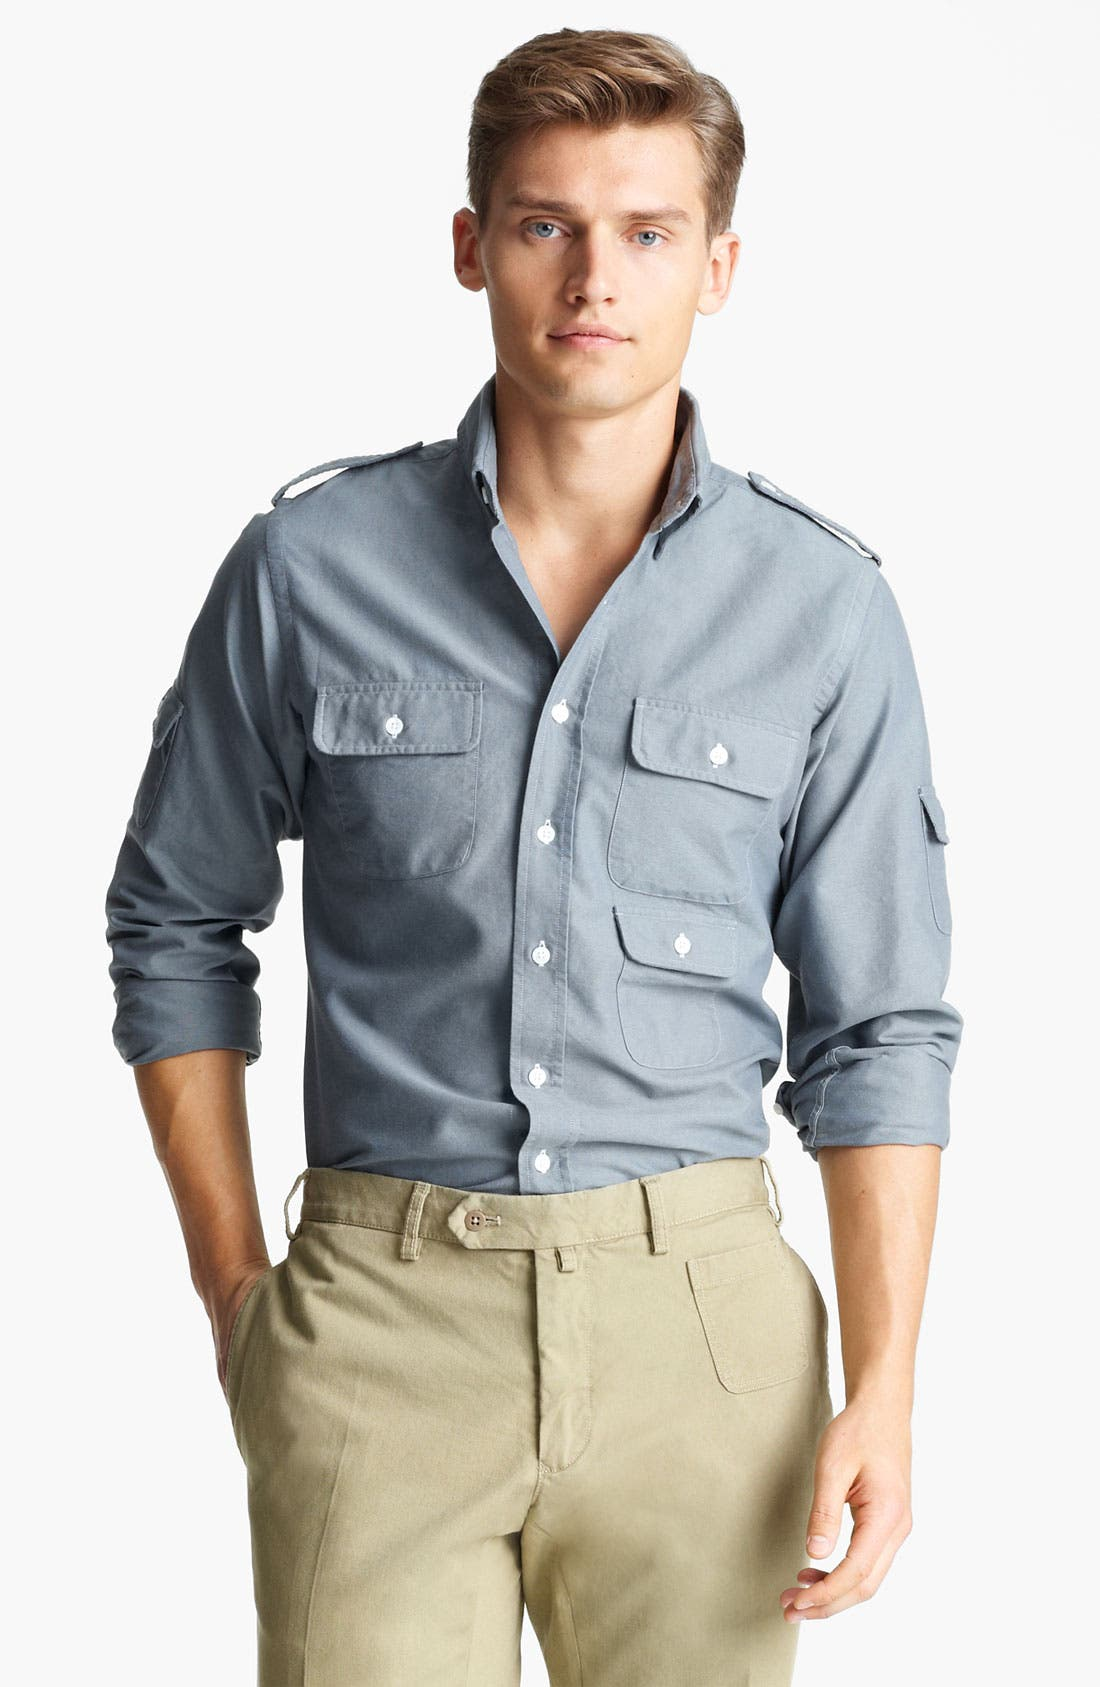 Alternate Image 1 Selected - Gant by Michael Bastian Multi Pocket Woven Shirt